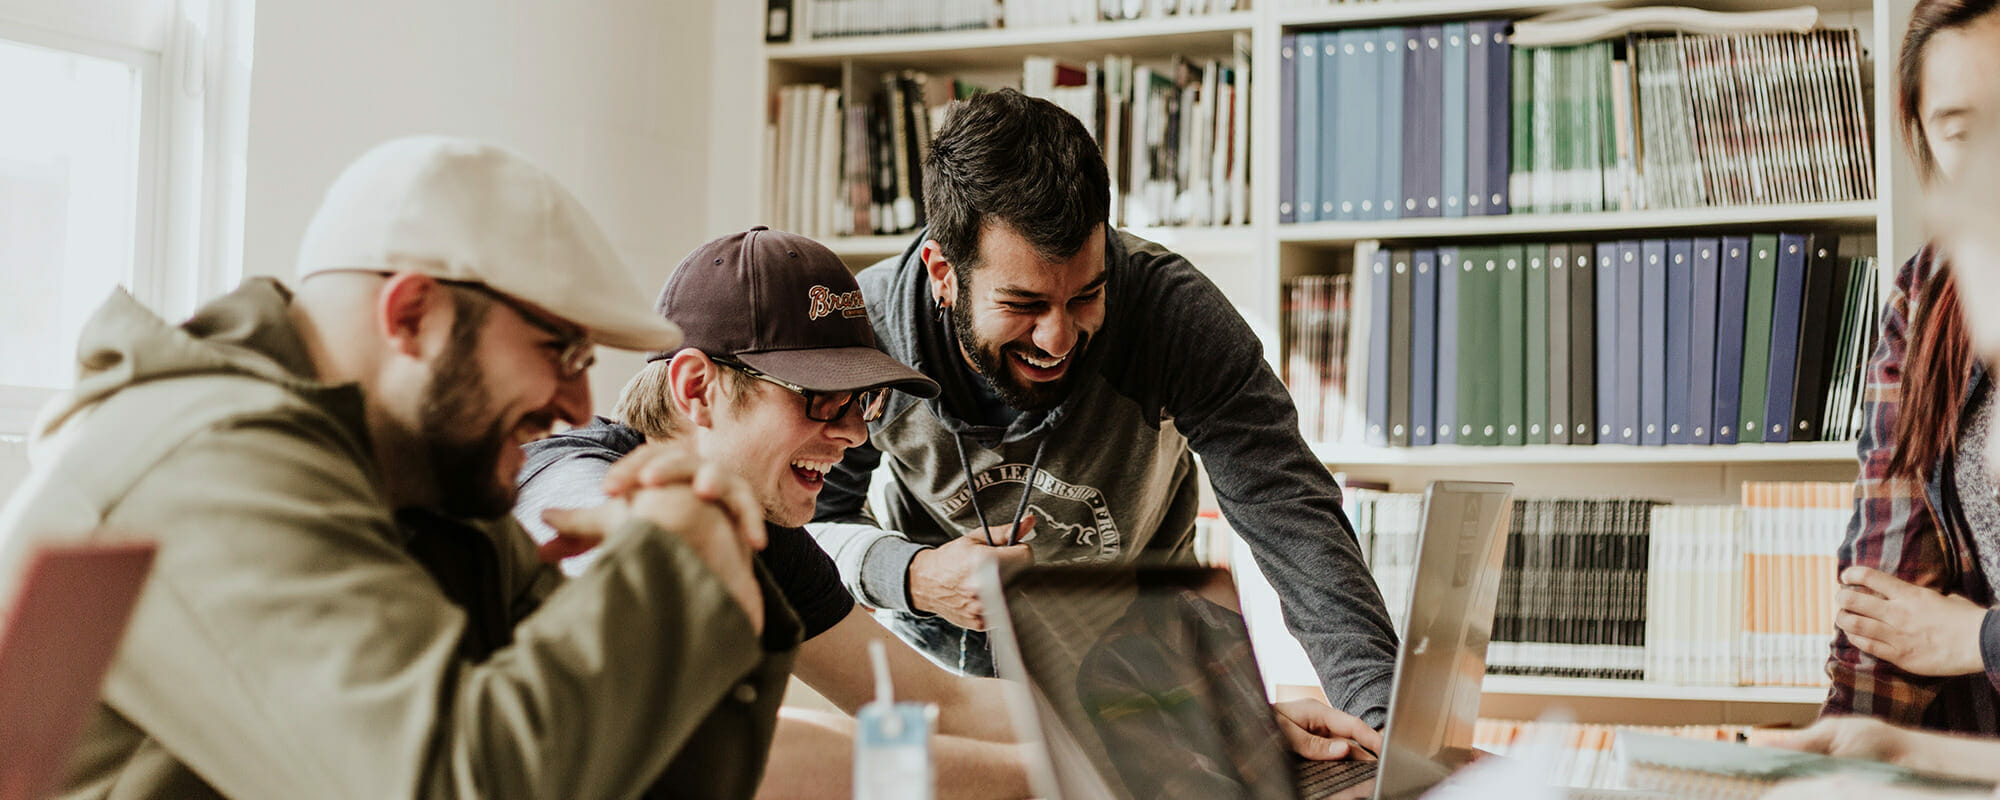 students laughing while using computers